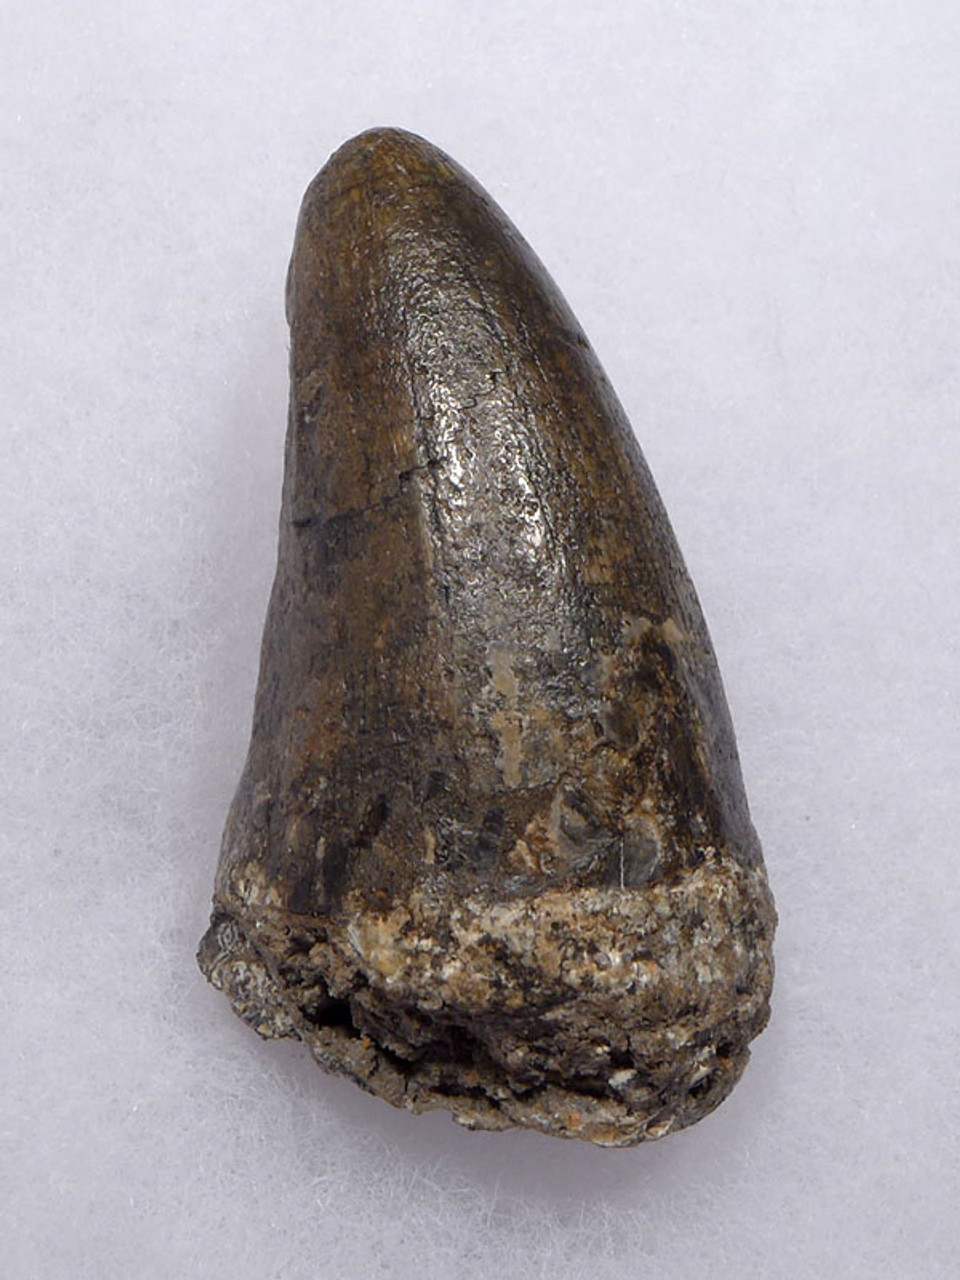 CROC047 - JAVA MAN KILLER RARE LARGE FOSSIL CROCODILE TOOTH FROM THE FAMOUS HOMO ERECTUS DEPOSITS OF SOLO RIVER